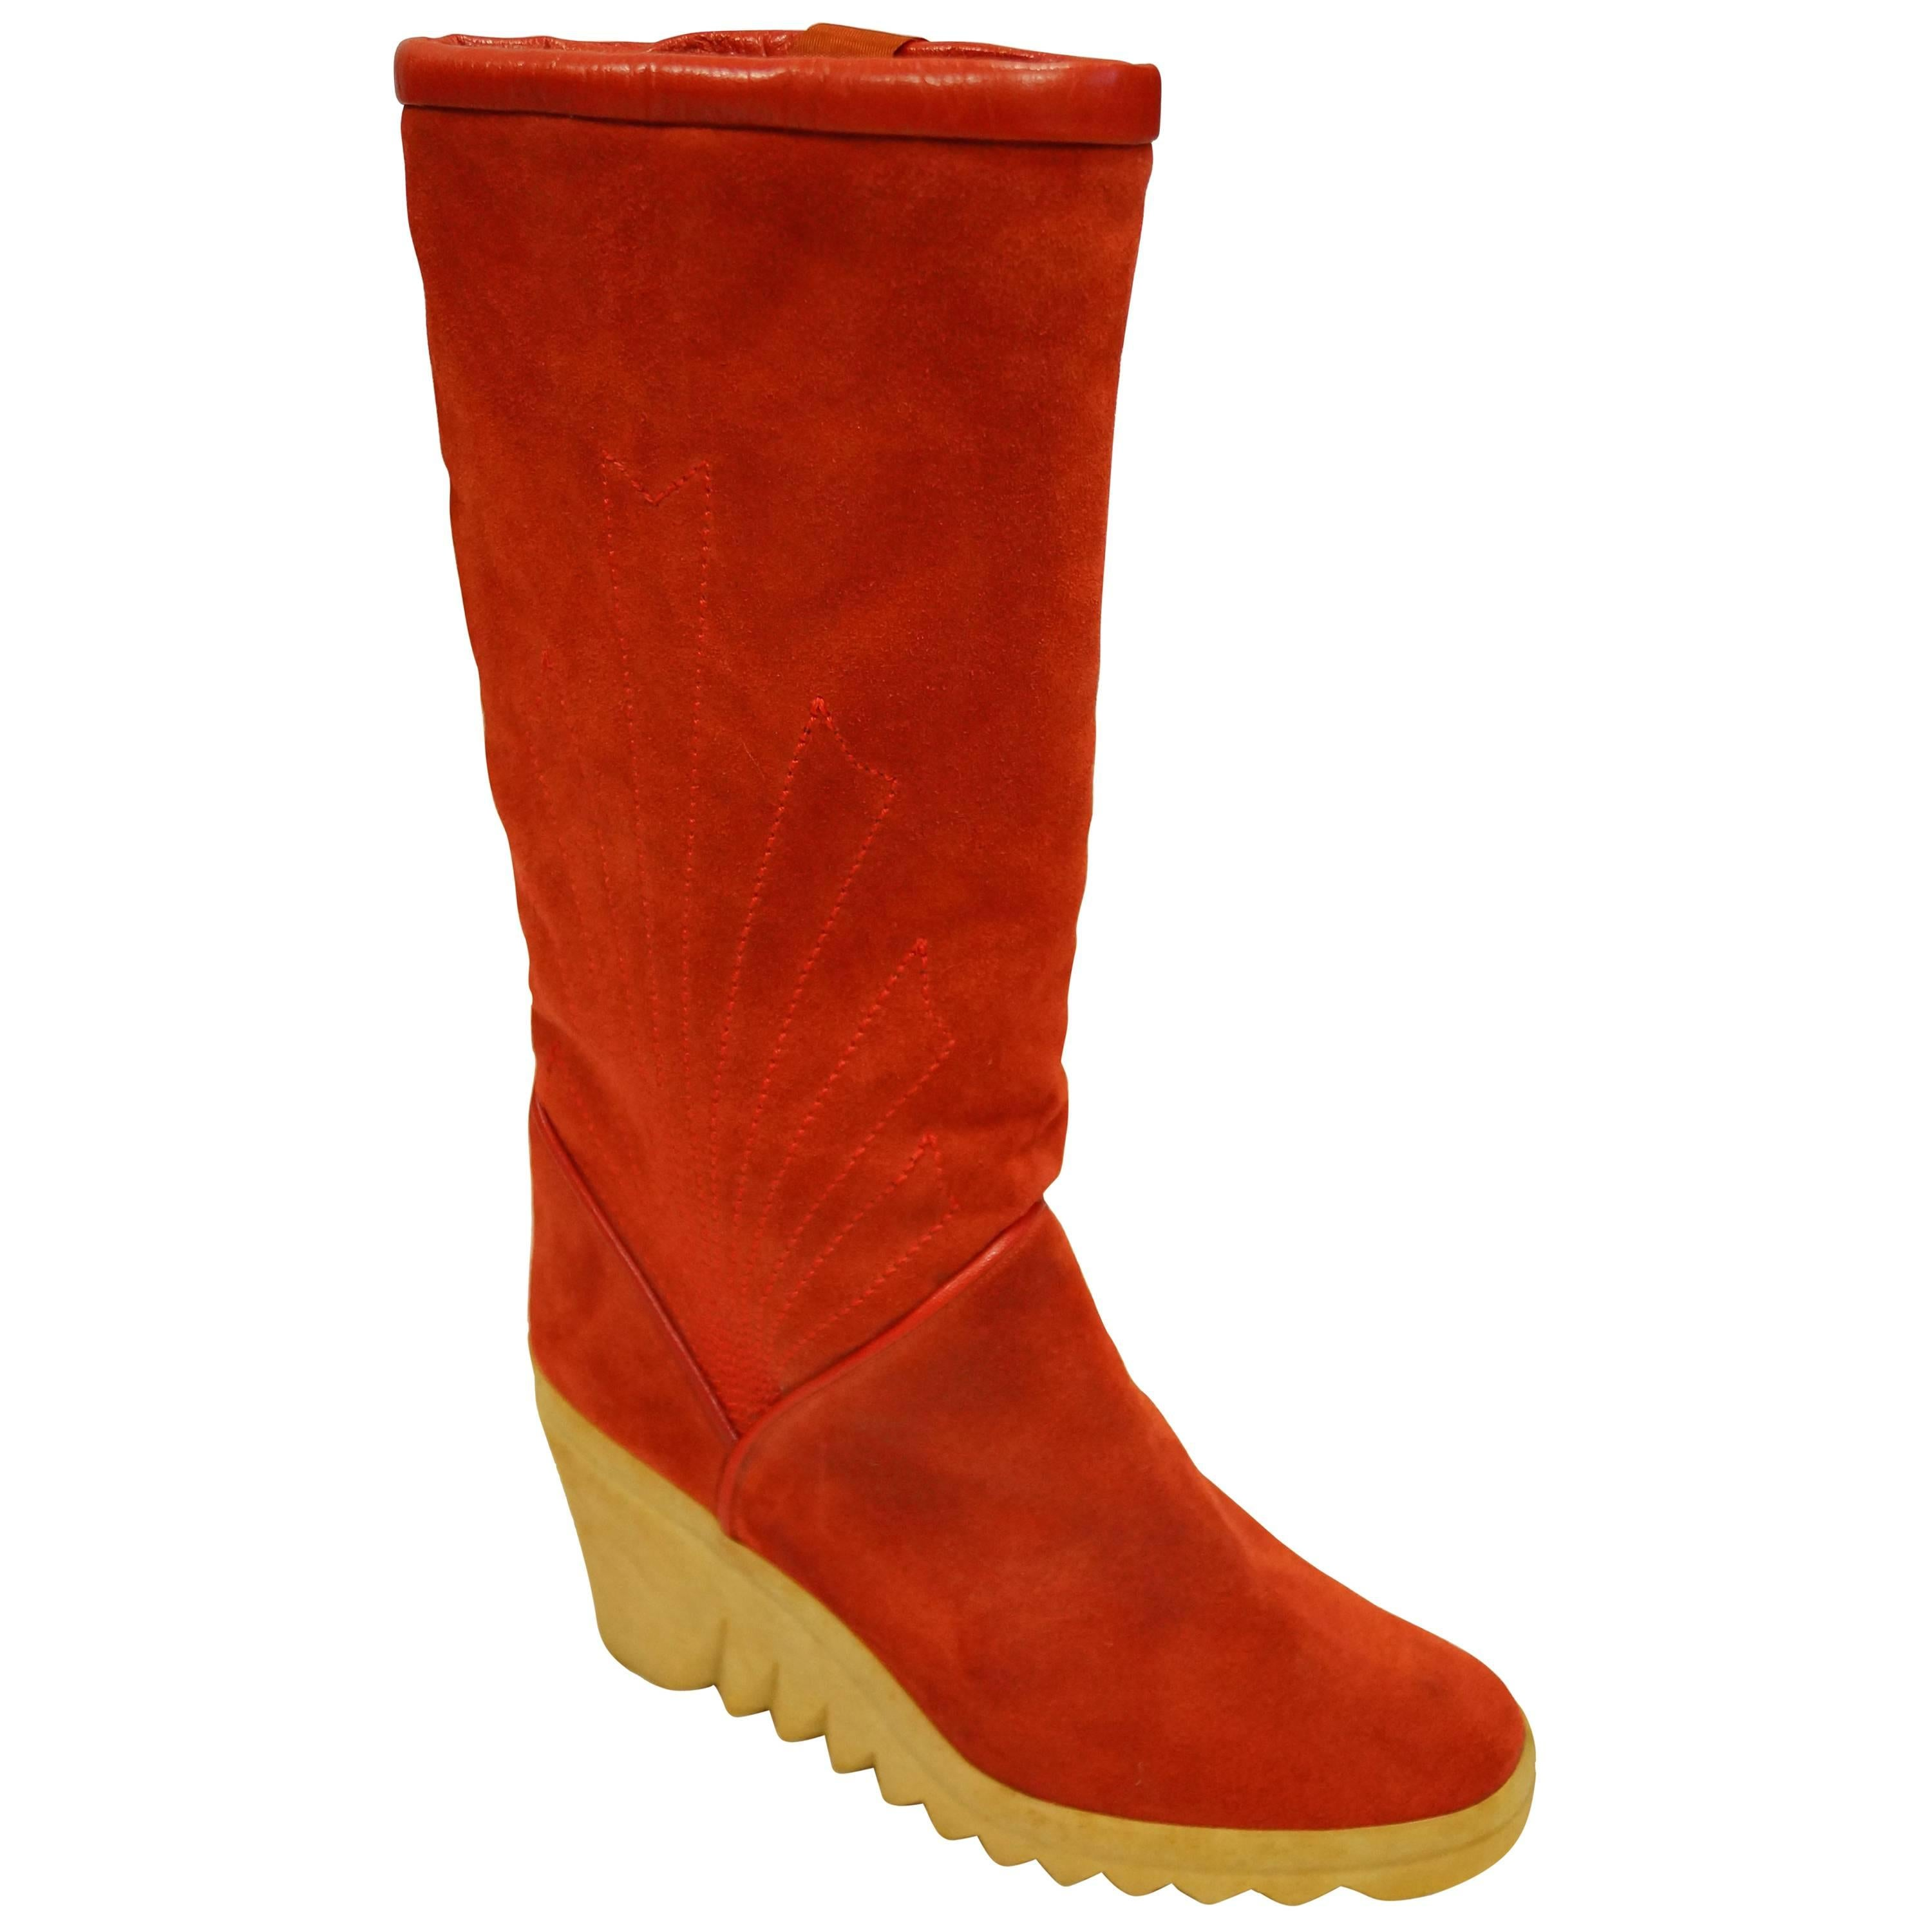 Charles Jourdan Red Suede Wedge Sunrise Stitch Boots, 1970s